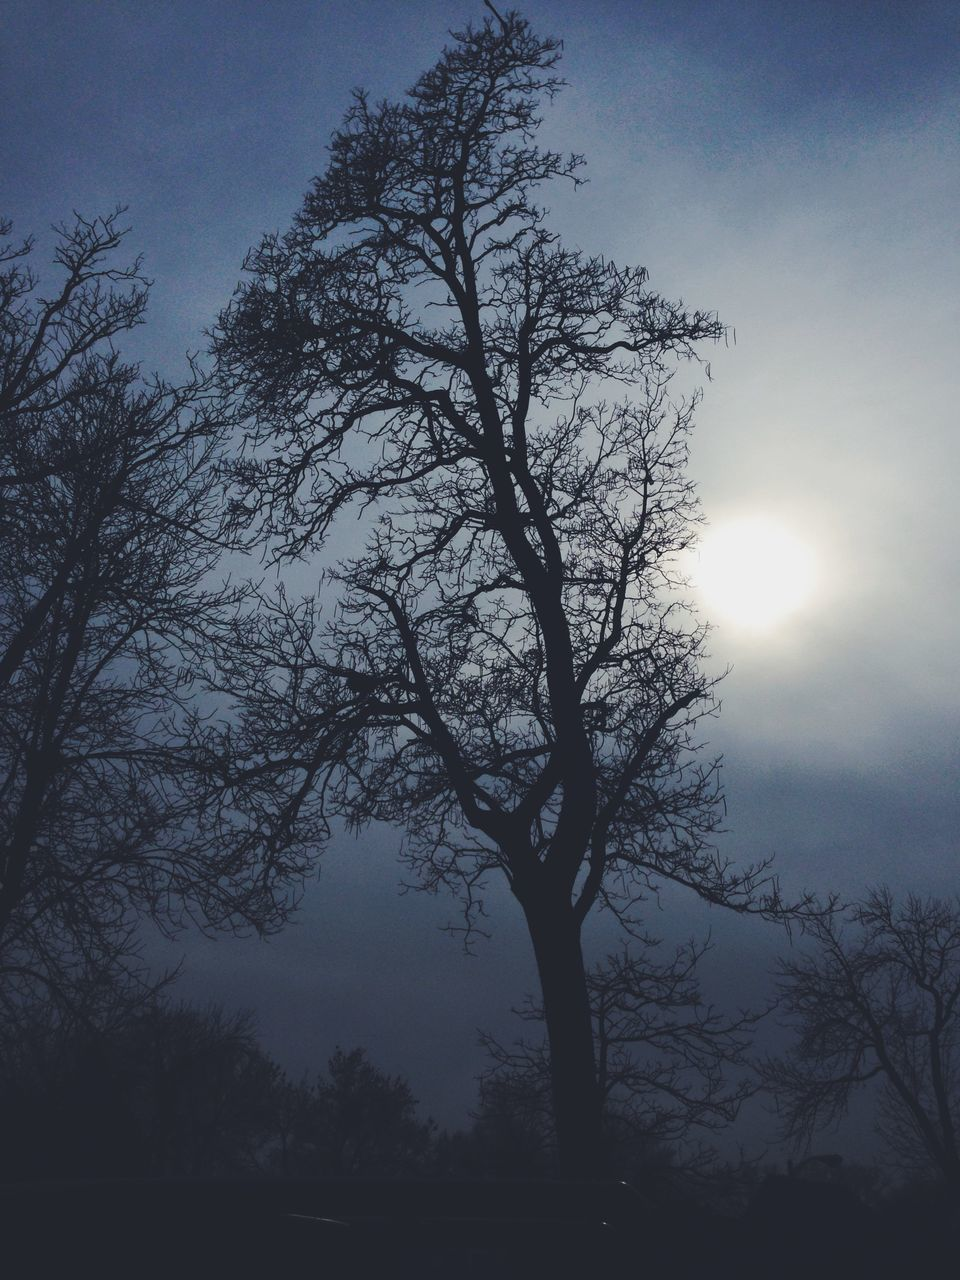 tree, nature, beauty in nature, tranquility, bare tree, landscape, sun, branch, silhouette, scenics, outdoors, sky, no people, day